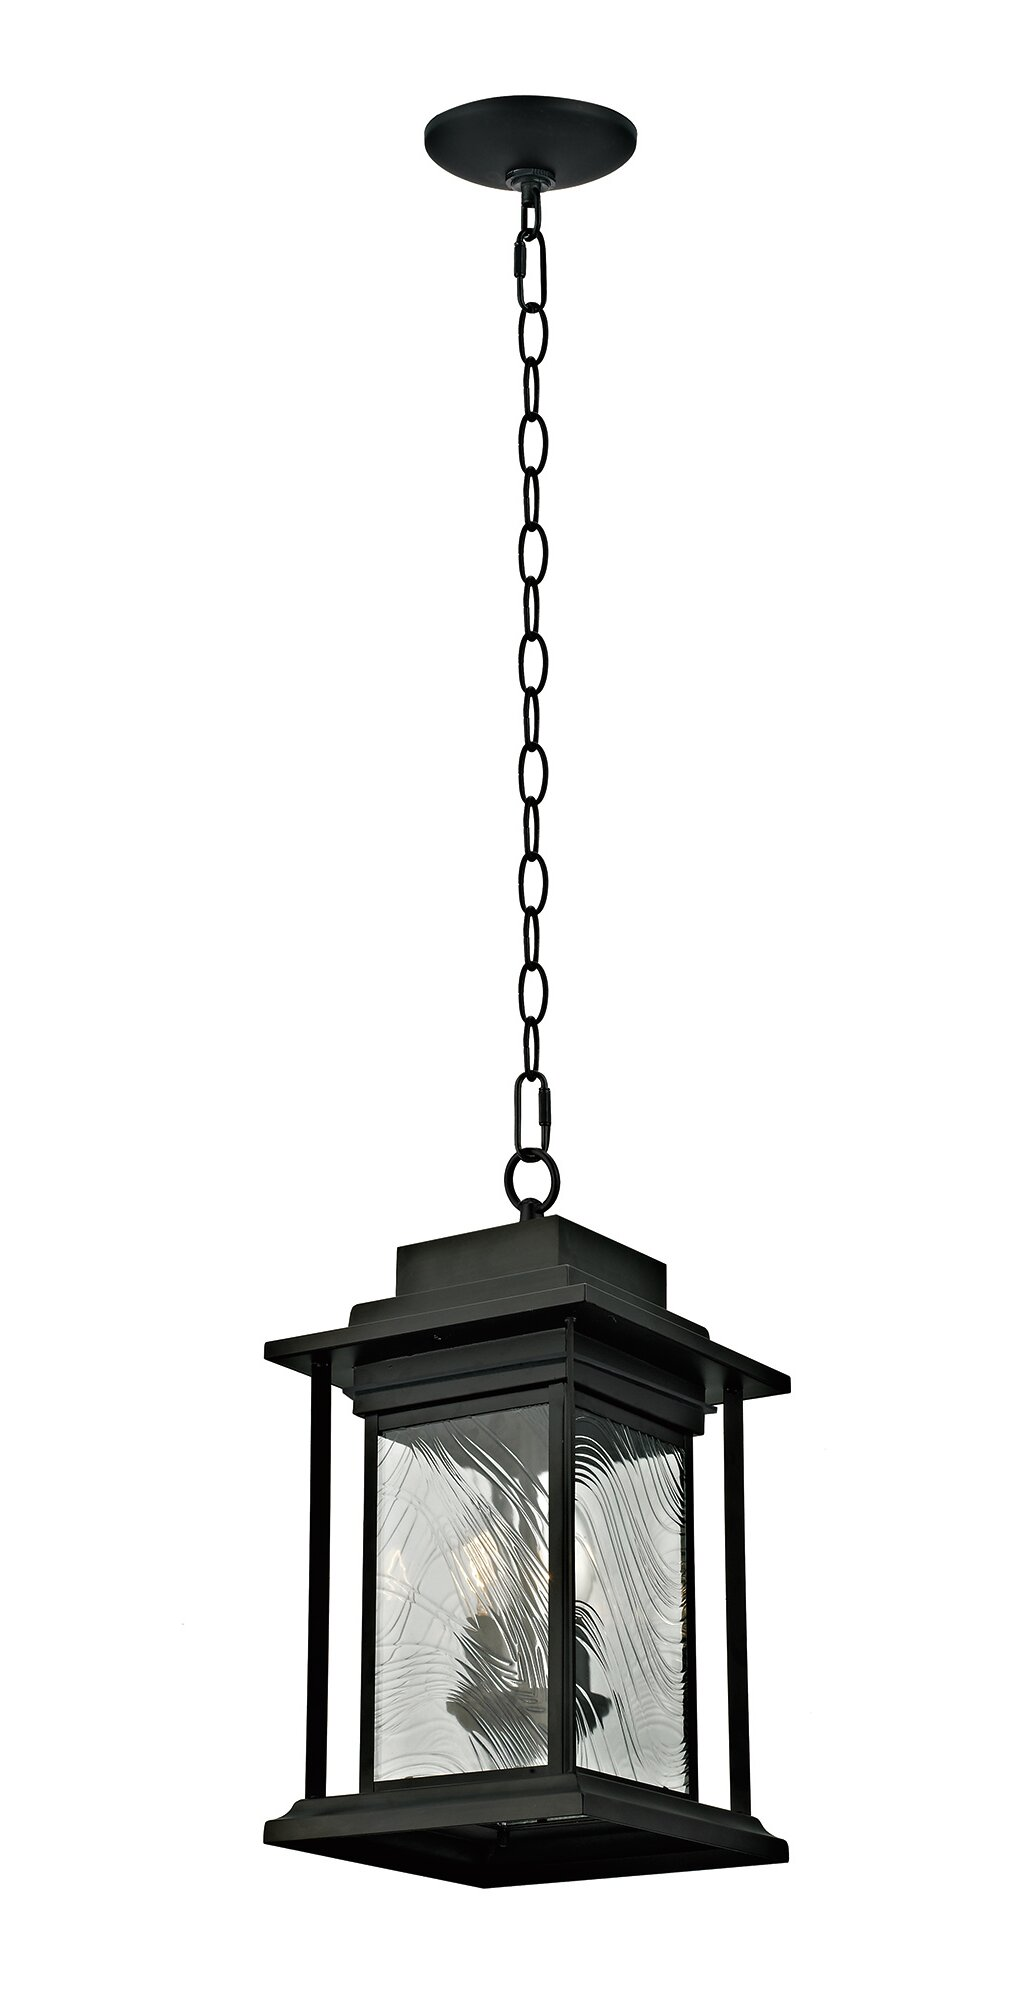 2 Light Outdoor Ceiling Lights You Ll Love In 2021 Wayfair